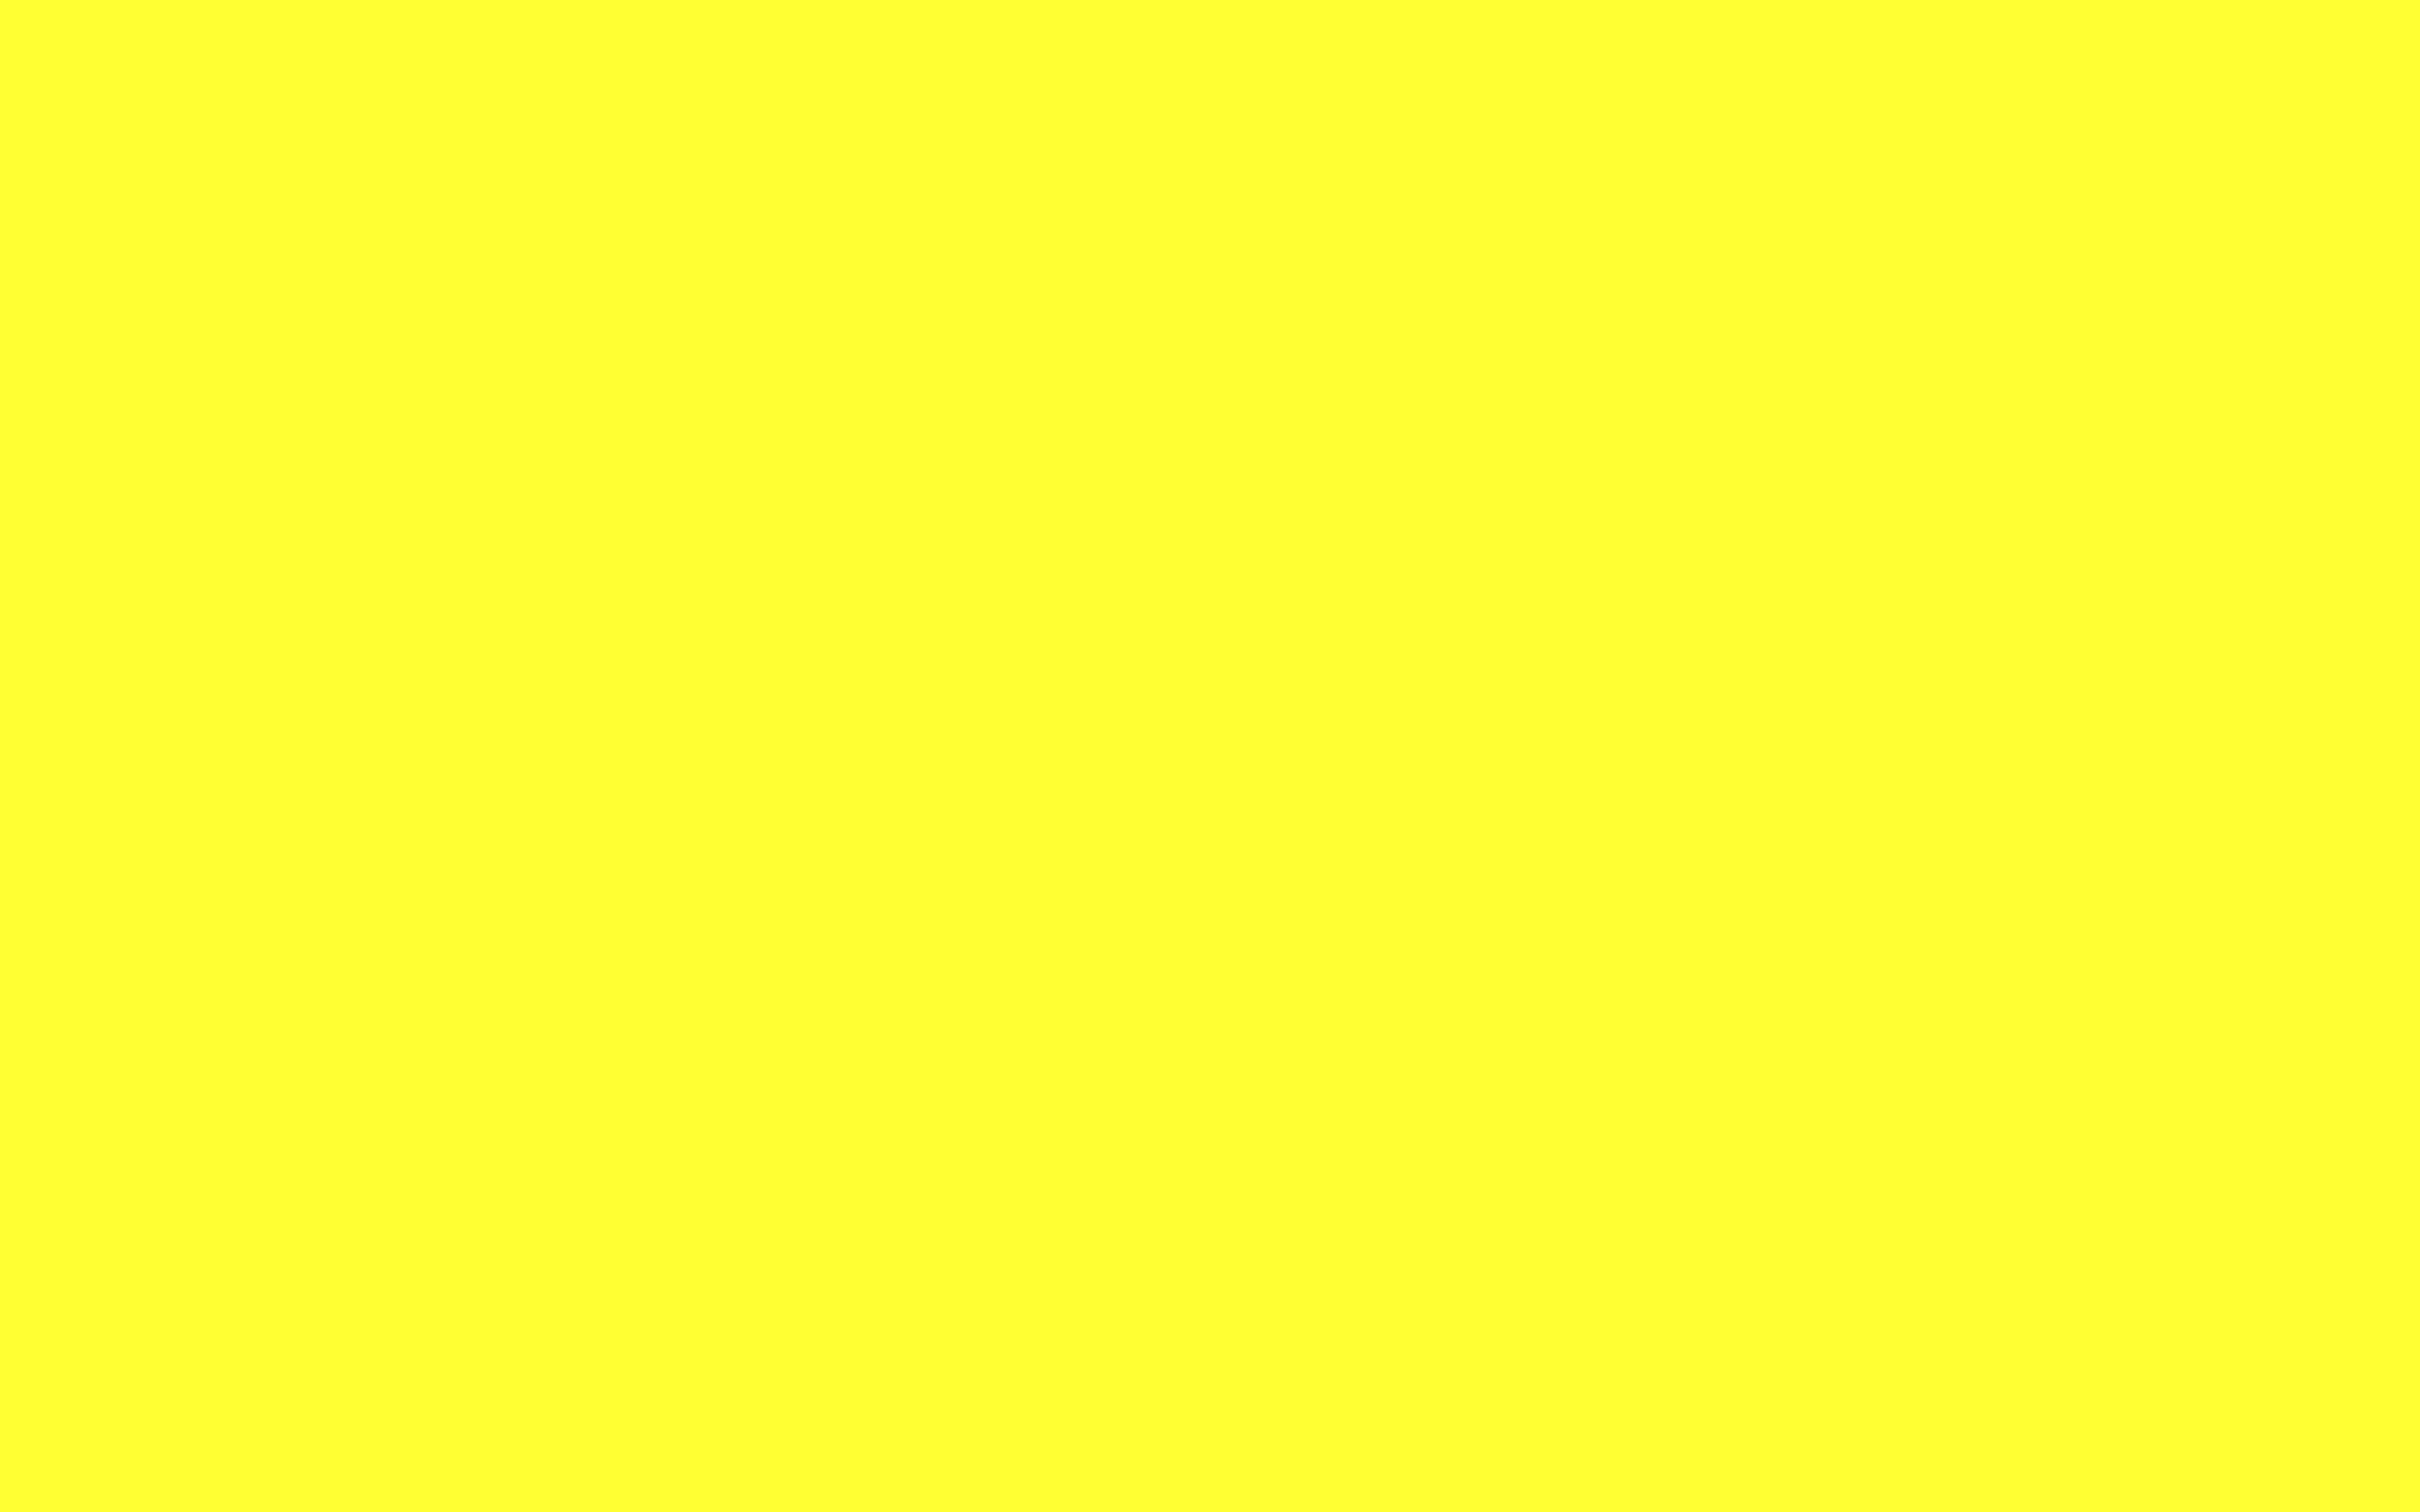 2560x1600 Daffodil Solid Color Background